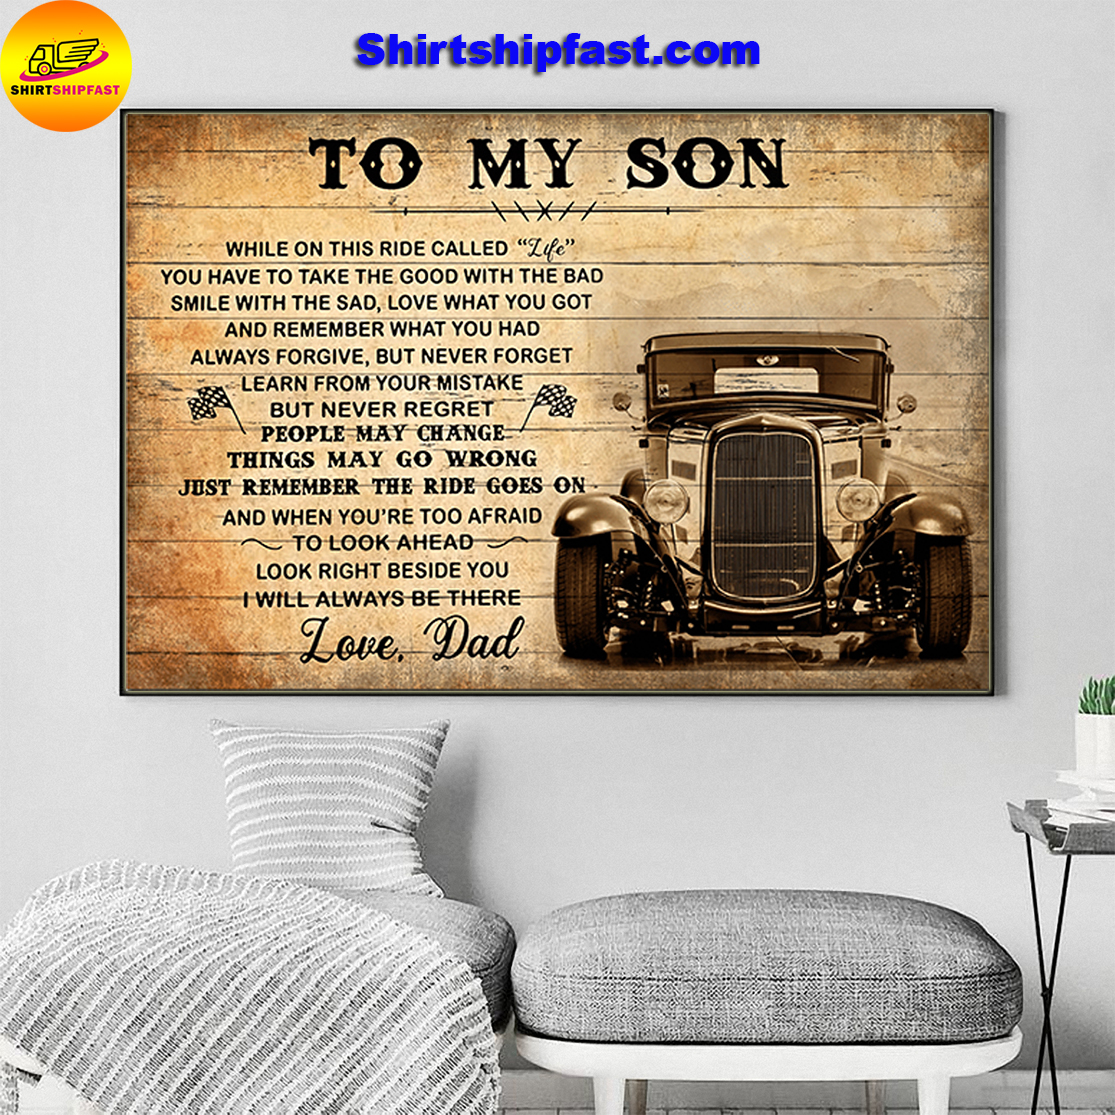 HOT ROD TO MY SON LOVE DAD CANVAS PRINTS - Picture 3